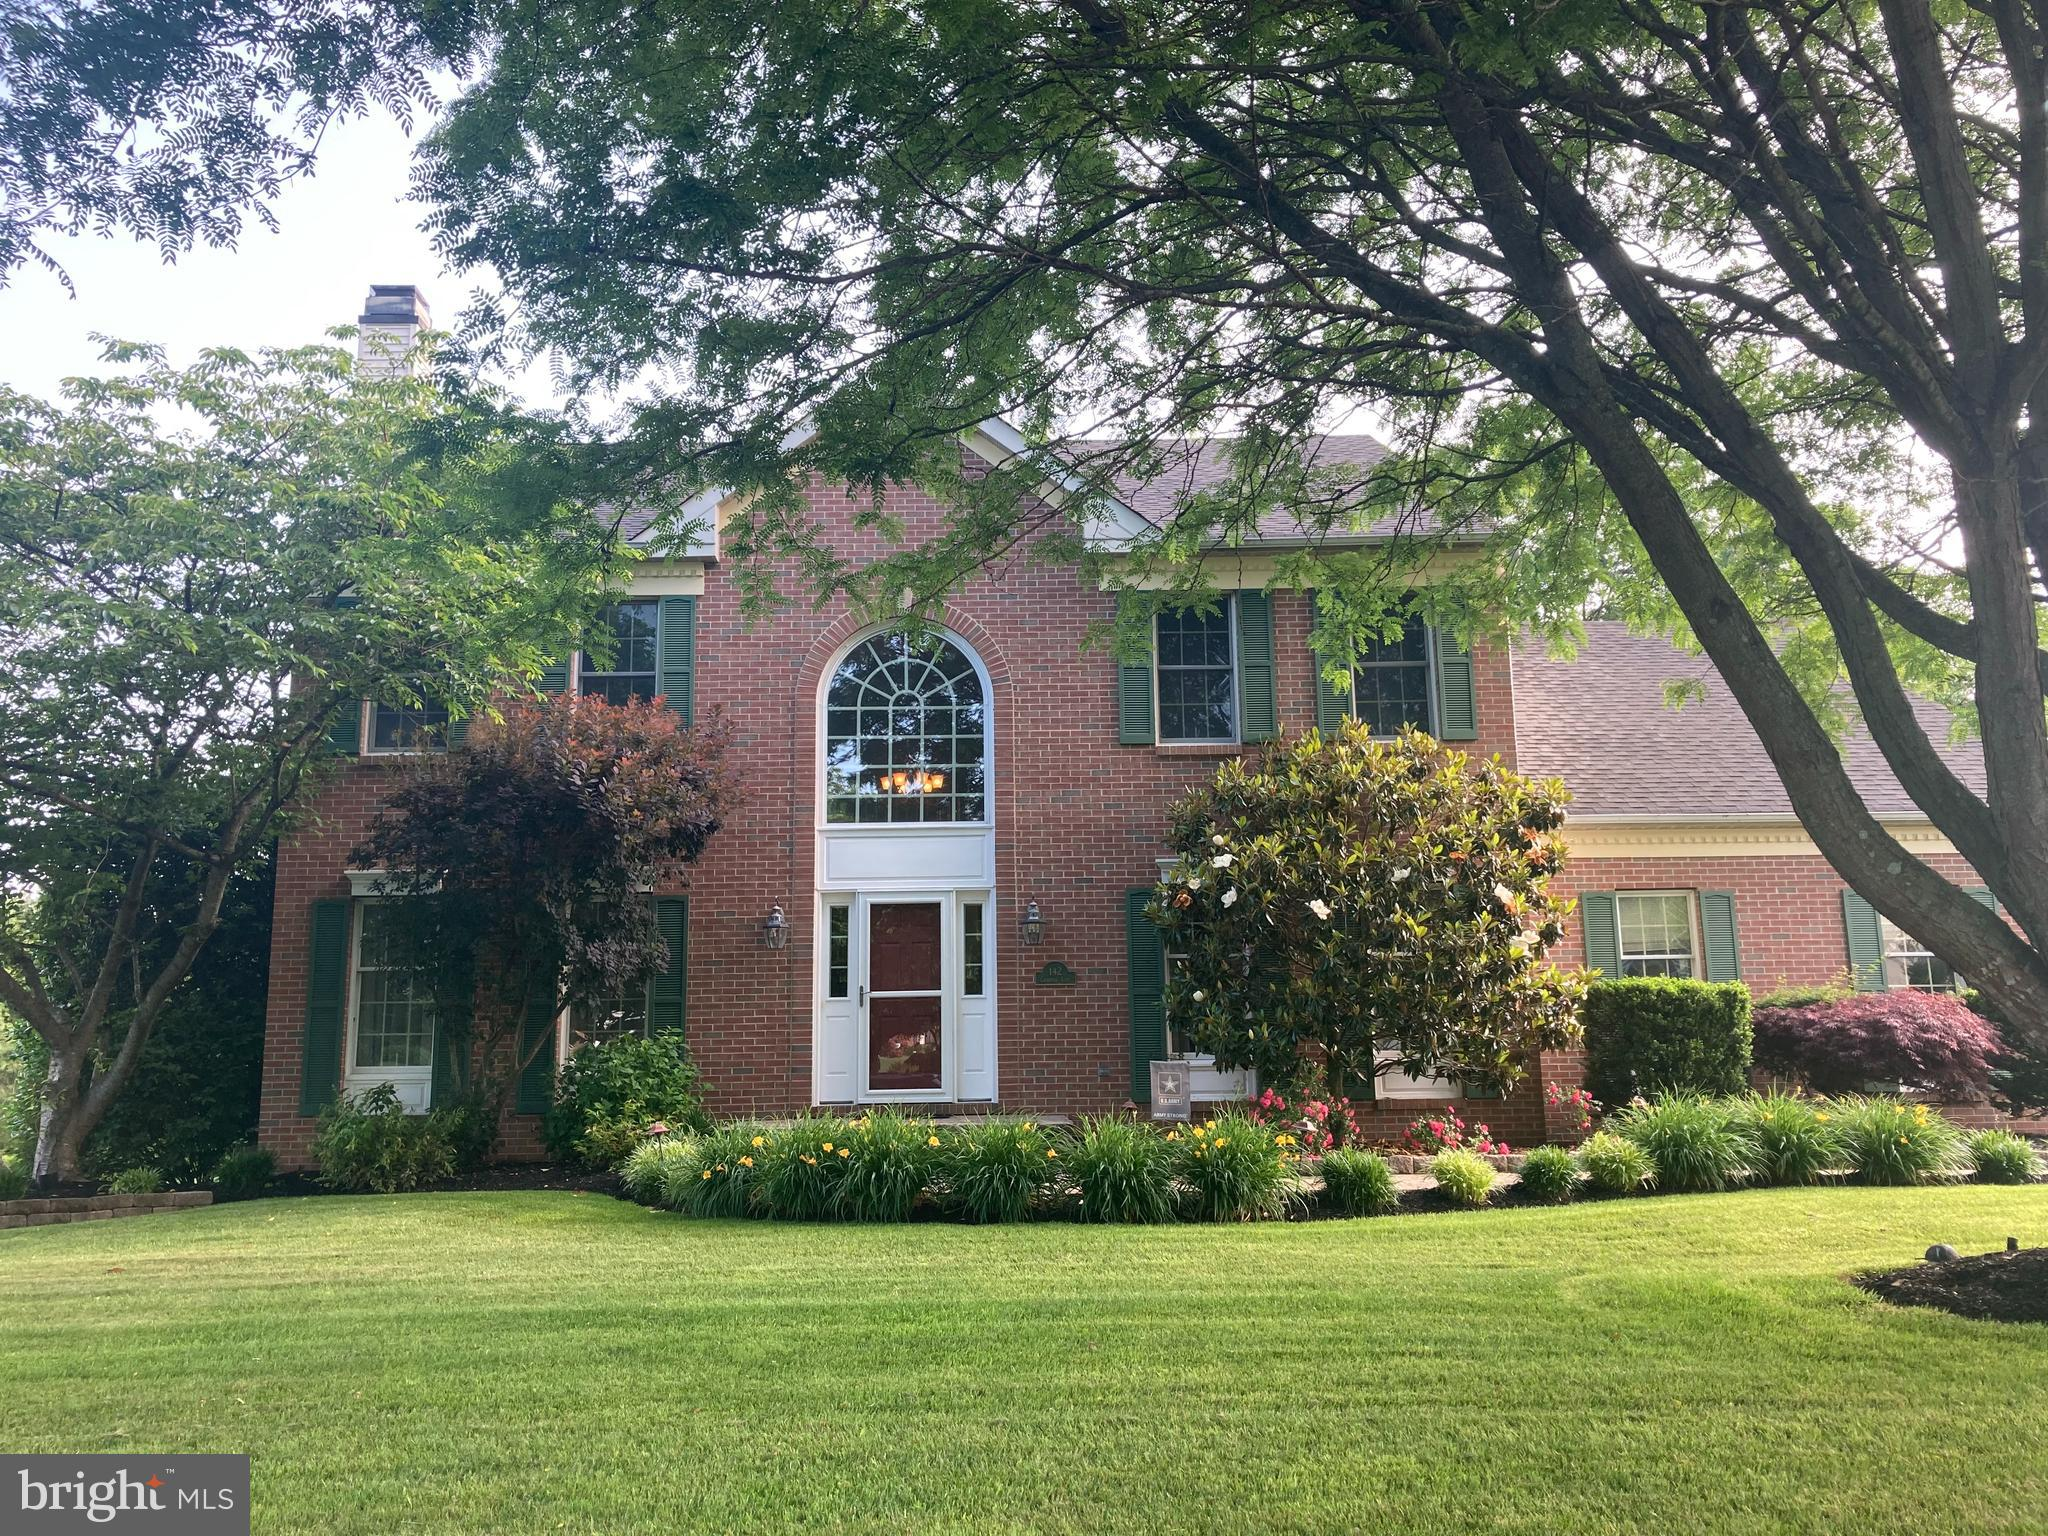 Welcome home to 142 Cromwell Lane! This BEAUTIFUL Colonial in the lovely Brandywine Knoll community is everything you are hoping for.  When you arrive at the property you will be charmed by the professional landscaping, the winding paver walkway, lined by flowering perennials, mature trees and a glorious magnolia.  As you enter, you'll love the elegant foyer with its palladium window and the hardwood flooring throughout the first floor. On your left is the formal living room with deep crown molding, wood burning fireplace and French doors to the large open family room. To your right, is the formal dining room with crown molding, wonderful natural lighting and elegant chandelier. This brings us to the beautifully appointed kitchen!  With all newer stainless appliances (2018), a porcelain farm sink, rich granite countertops, and TWO large pantries, the kitchen opens out to the over-sized two-level deck and spacious fenced back yard.  The main floor also has an amply sized laundry/mud room with a second entrance to the back deck.  The 2nd floor offers a spacious master suite with a huge walk-in closet and master bath with 2 vanities, jetted soaking tub and a stall shower. The 2nd floor has 3 additional generously sized bedrooms, all with ample closet space and an updated hall bath (2016).  In addition to the kitchen appliances, you'll find a newer washer (2019) and HVAC, installed in 2014, which has a 10-year parts and labor warranty.  The finished basement is designed to accommodate numerous activities . . . whether home entertainment, video games, ping pong or pool, there is LOTS of space to relax enjoy.  There is also a separate room designed to be an office or study or crafts room . . . only limited by your needs and imagination!  This is a walkout basement, with an extra wide stairway to the large, totally fenced-in back yard. Brandywine Knoll is notable for its quiet, peaceful sense of community. Located in the West Chester School District, just minutes from the 